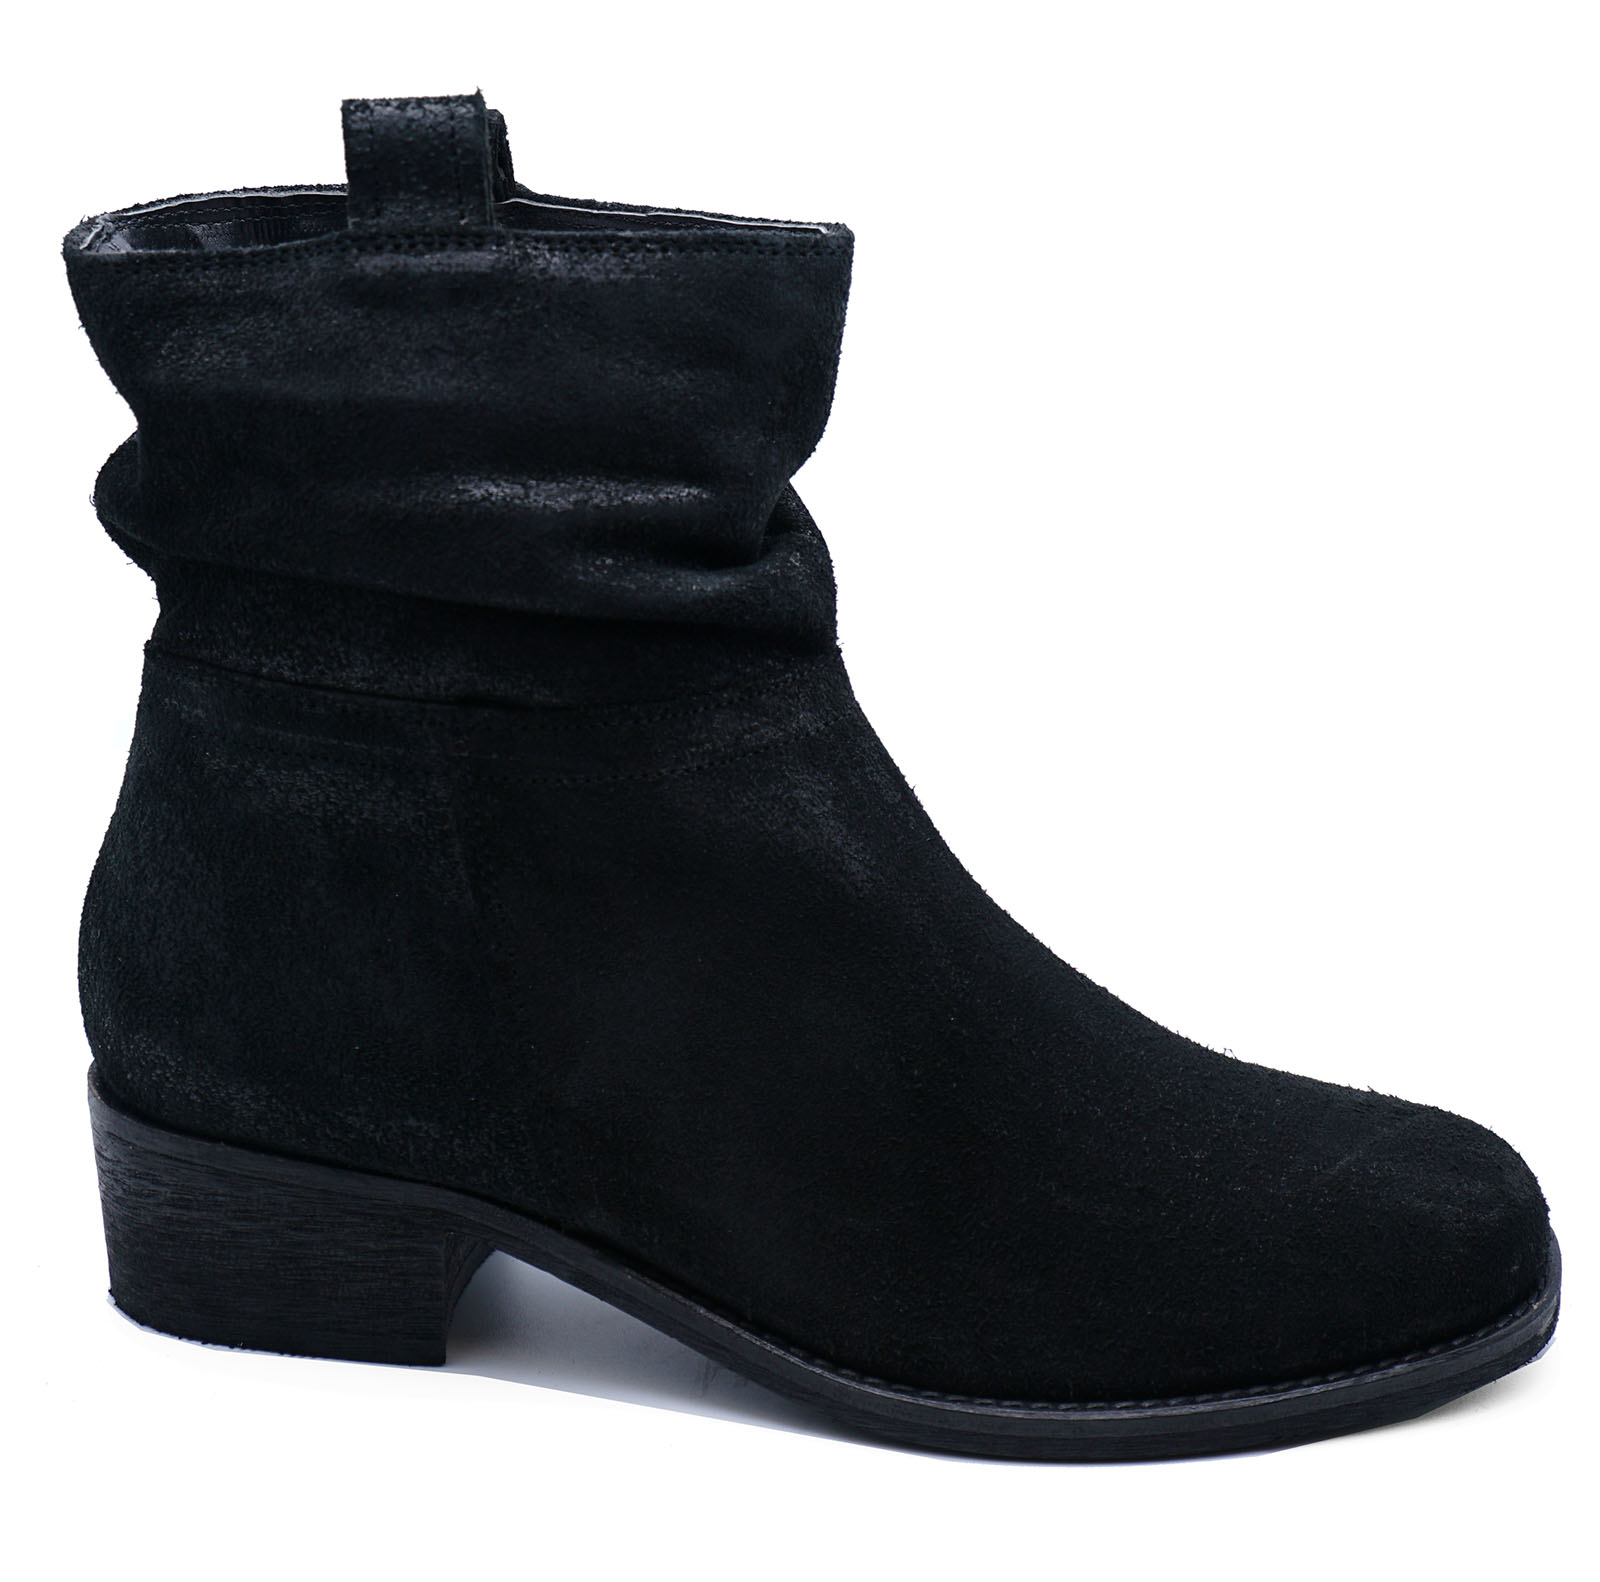 thumbnail 6 - LADIES-GENUINE-LEATHER-BLACK-ZIP-UP-ANKLE-CALF-SLOUCH-BOOTS-COMFY-SHOES-UK-2-9